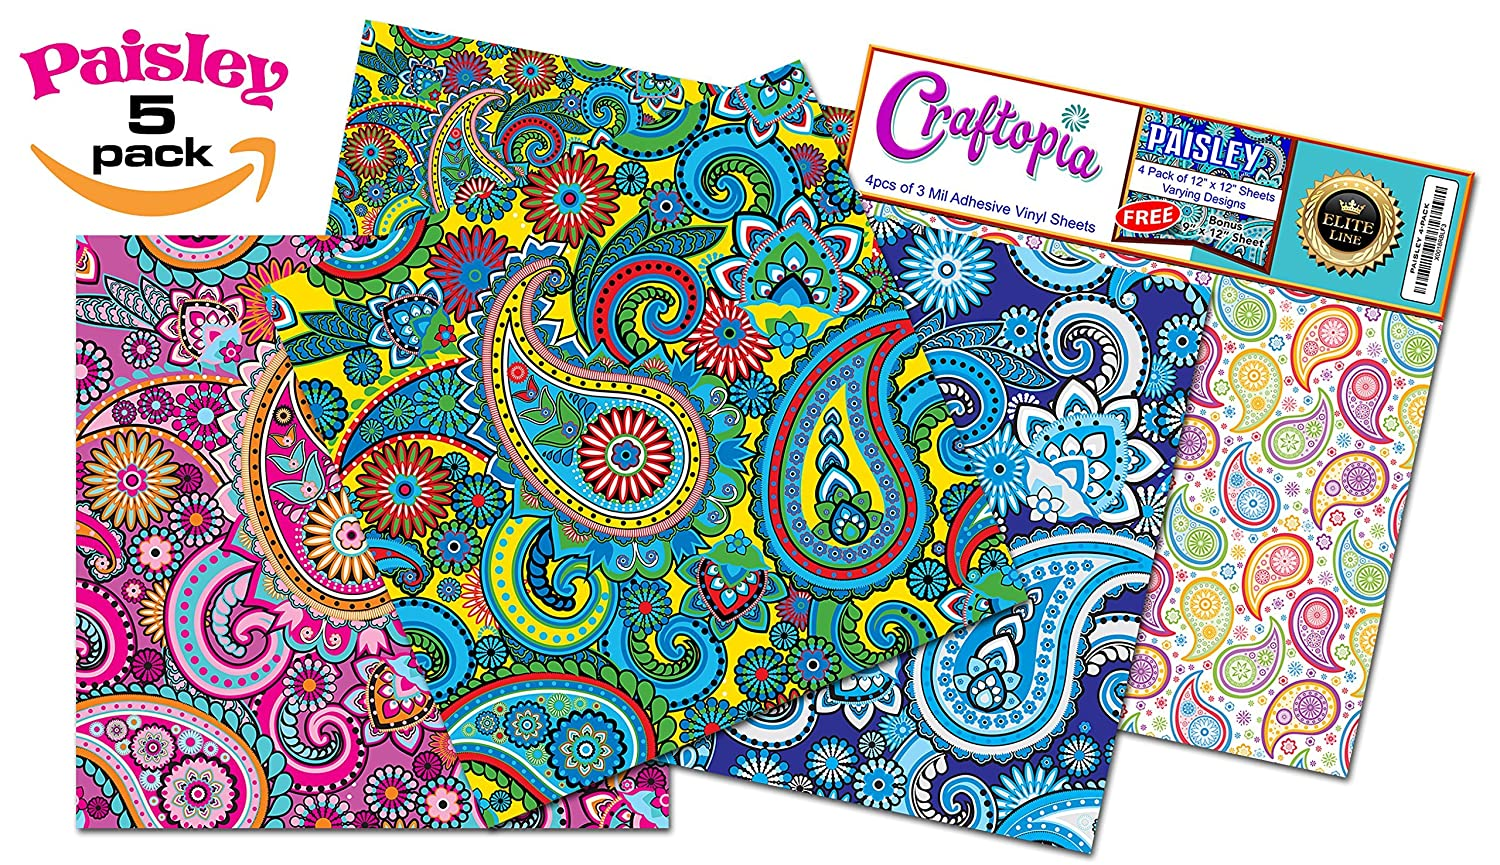 Vinyl sheets for crafts - Amazon Com Craftopia S Paisley Pattern Self Adhesive Craft Vinyl Sheets 4 1 Assorted Vinyl Pack For Cricut Silhouette Cameo Craft Cutters Printers